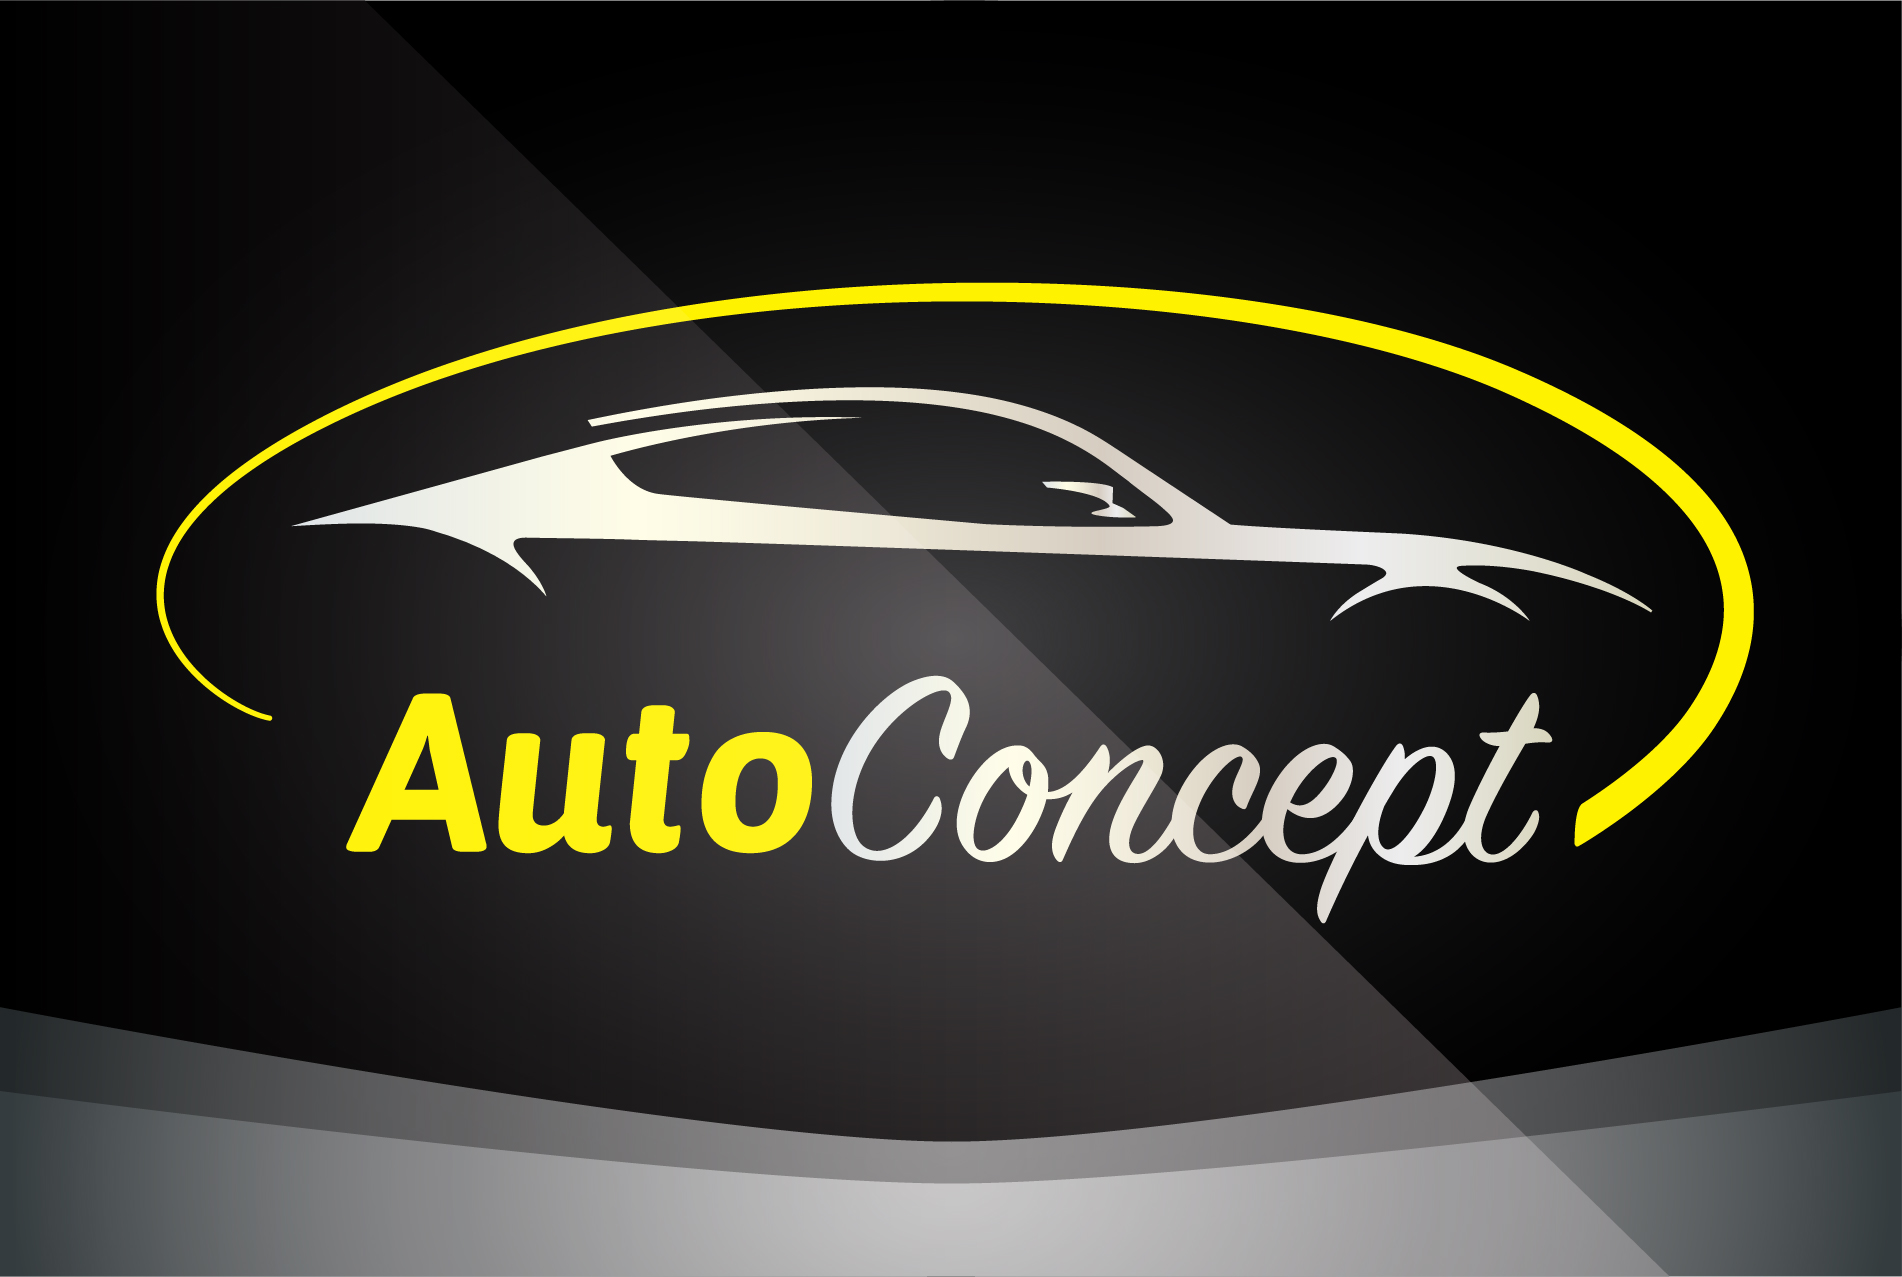 Auto Company Logo Vector Design Concept with Sports Car Silhouette - Yellow